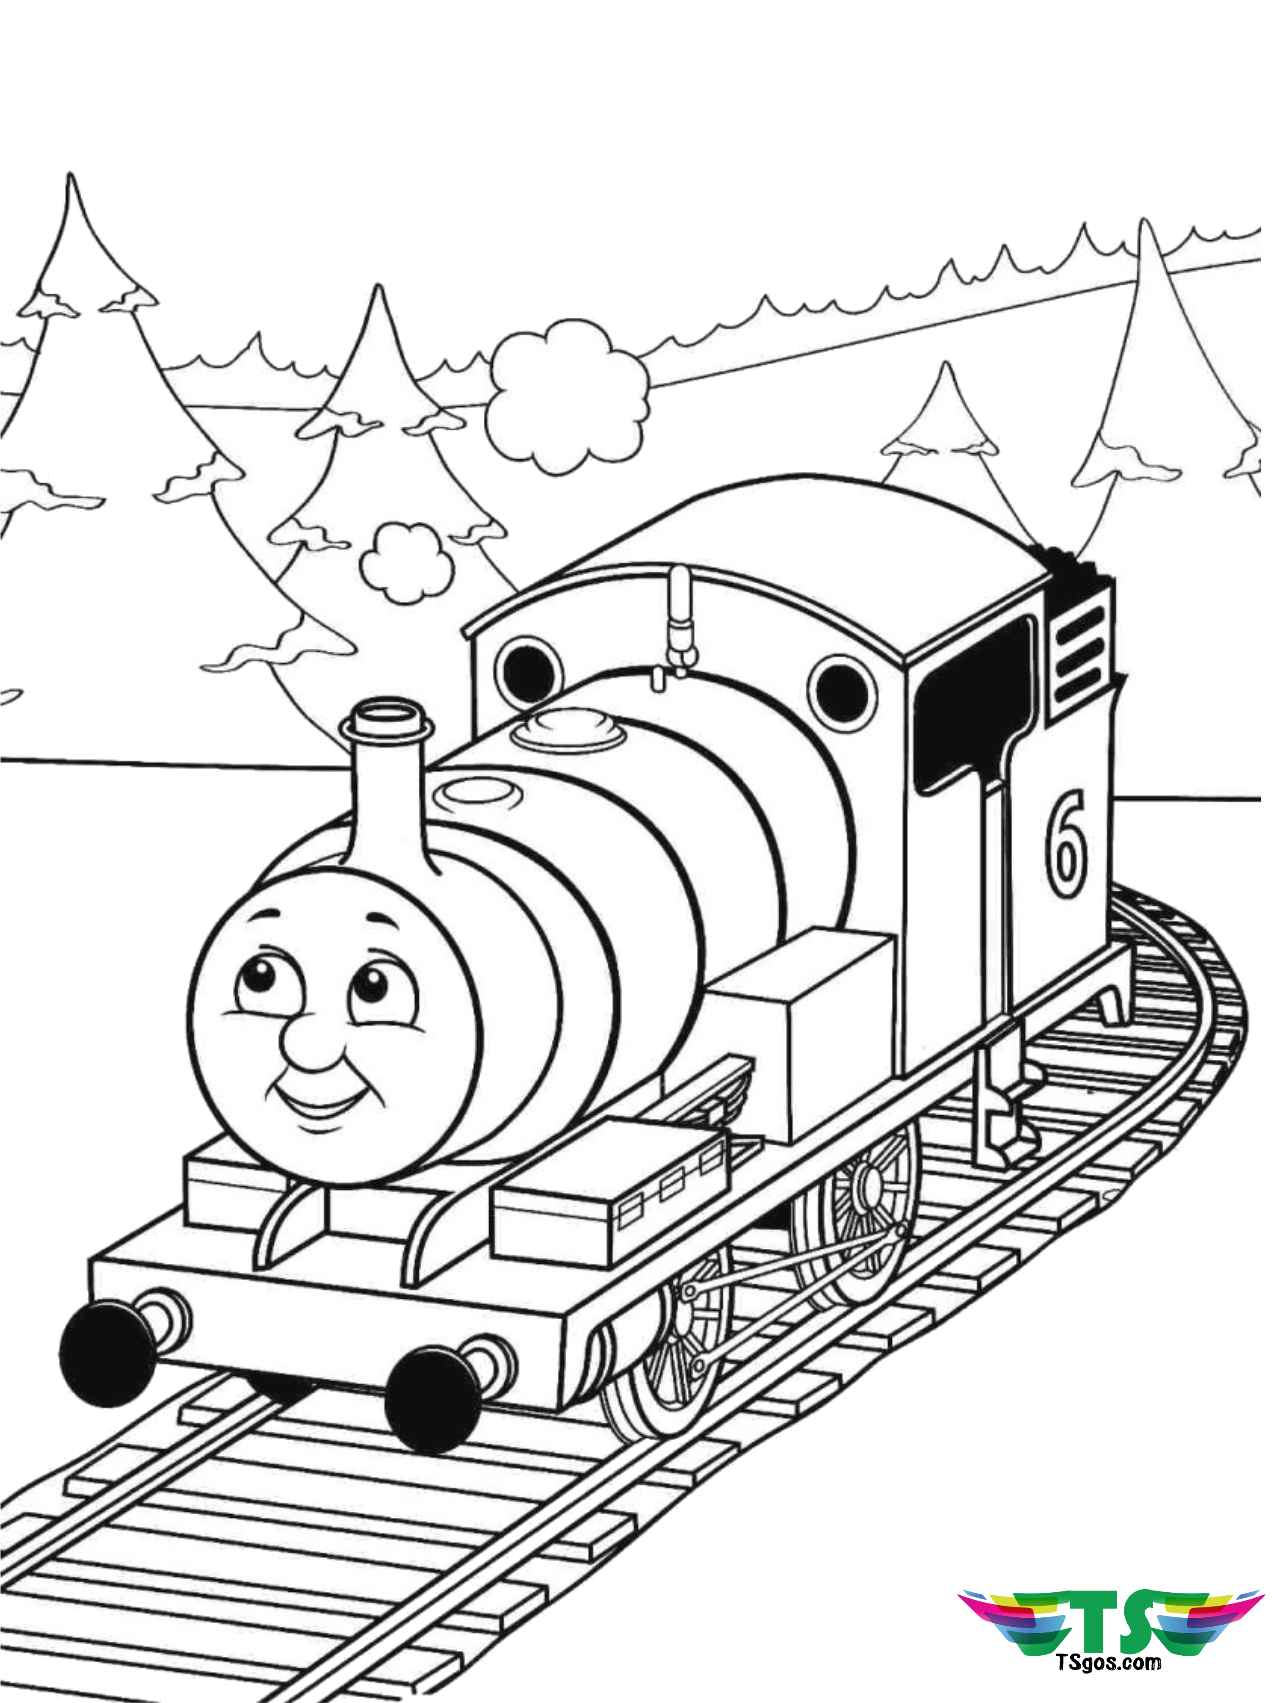 printable coloring pages trains free printable train coloring pages for kids printable coloring trains pages